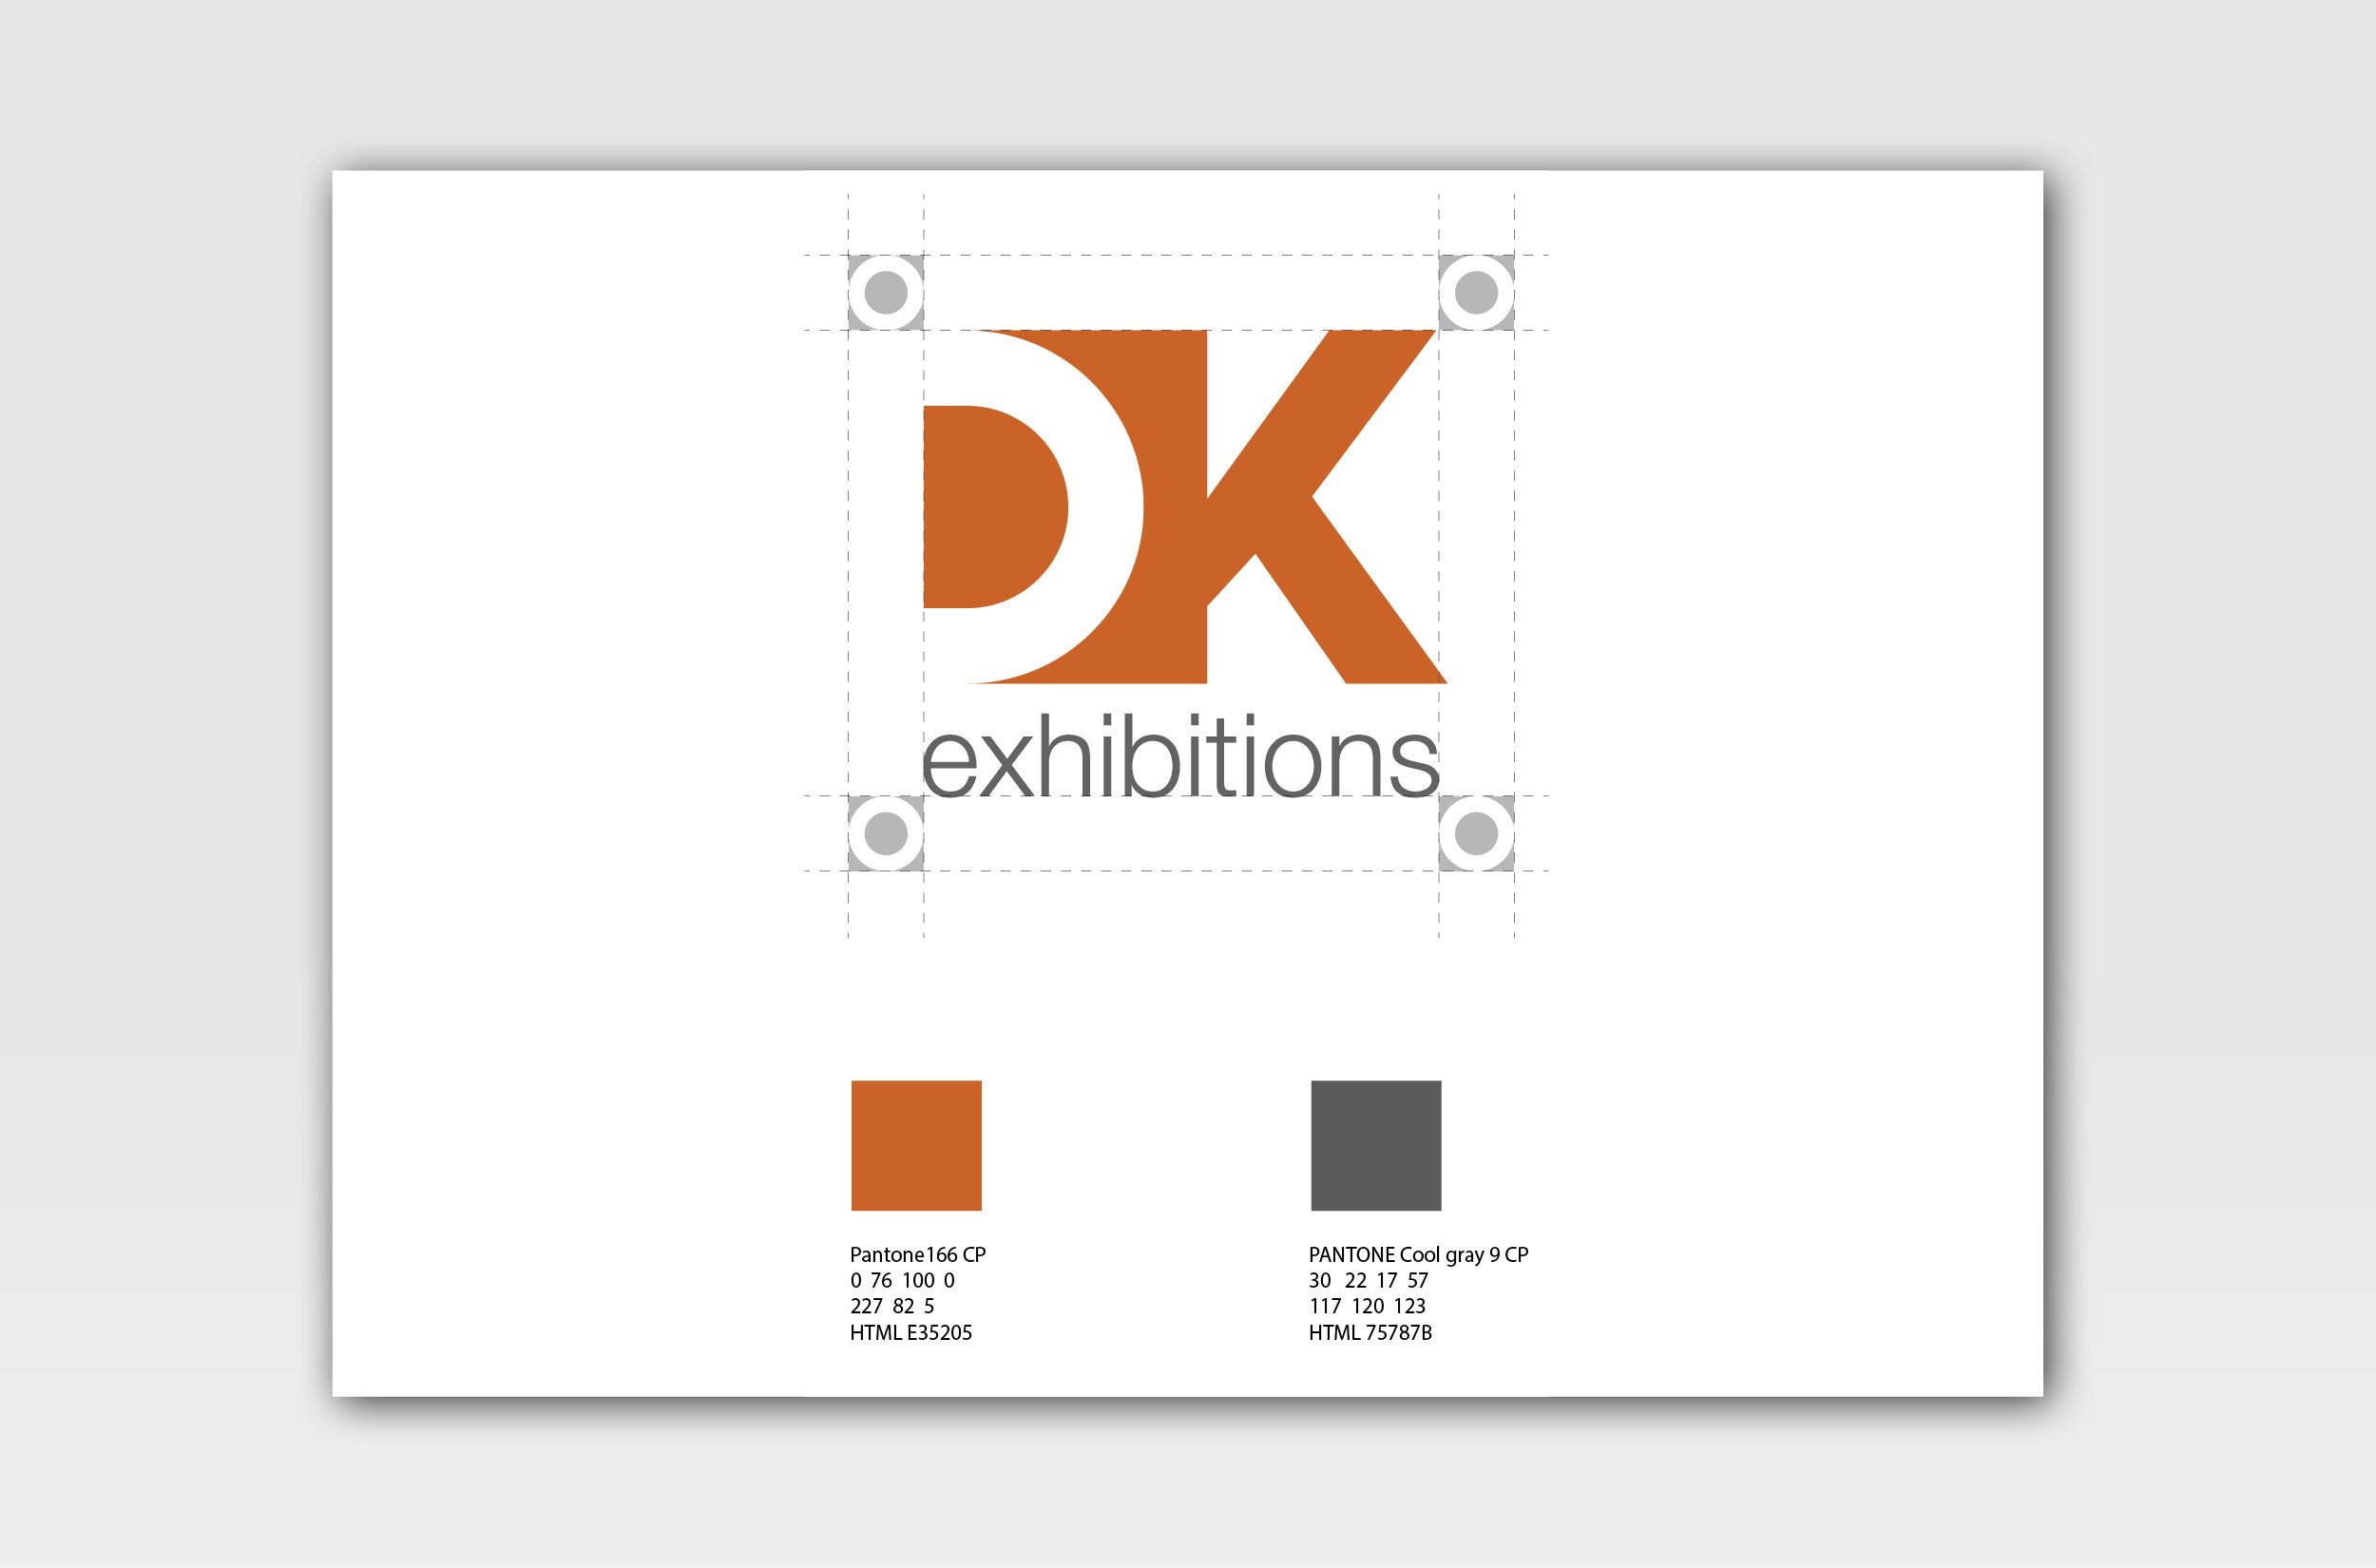 DK exhibitions logo guidelines